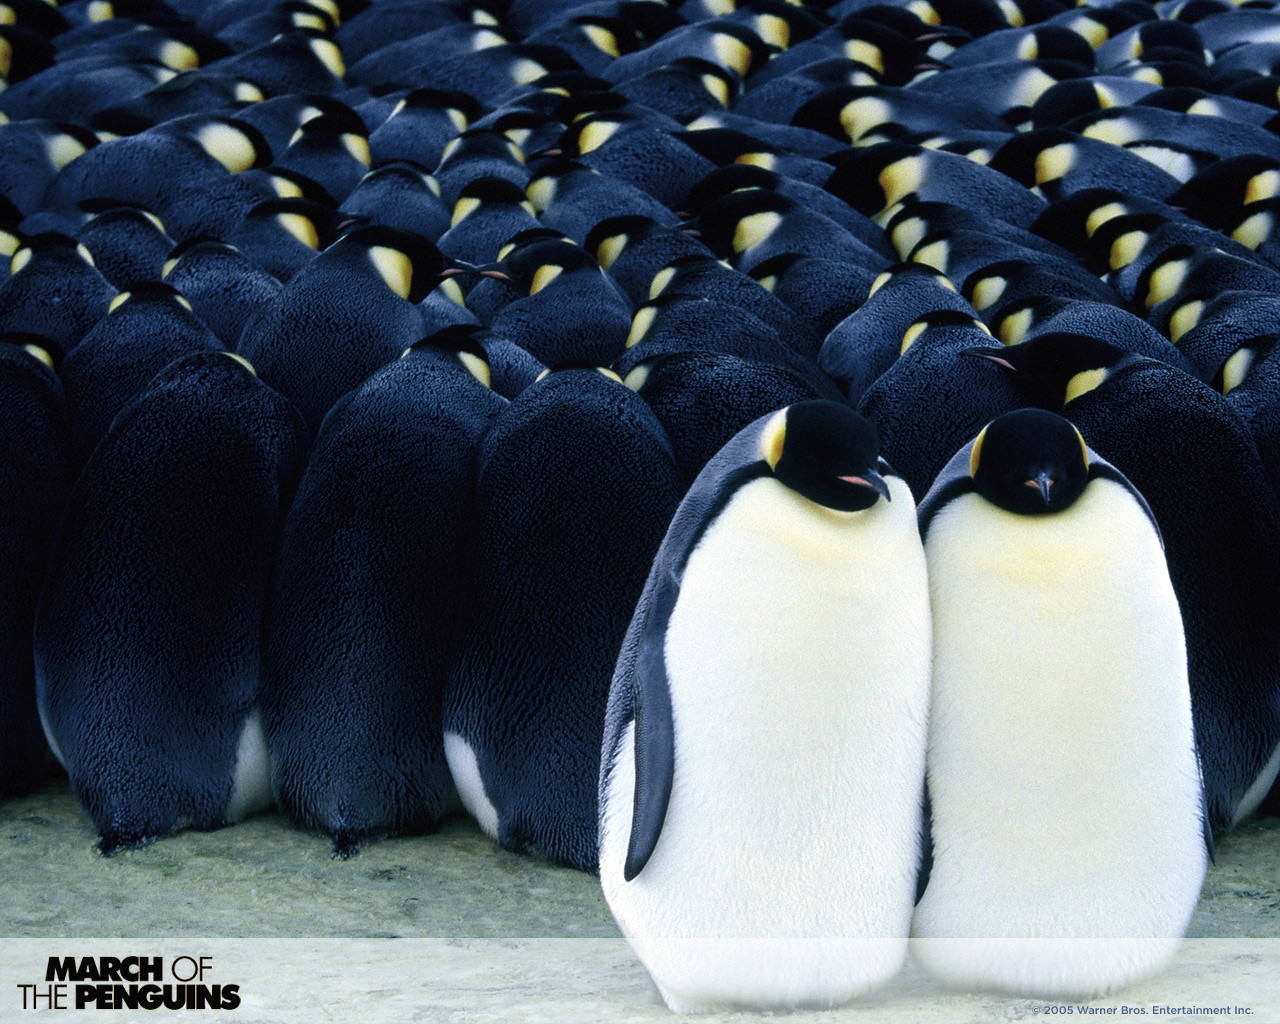 march of the penguins ending a relationship